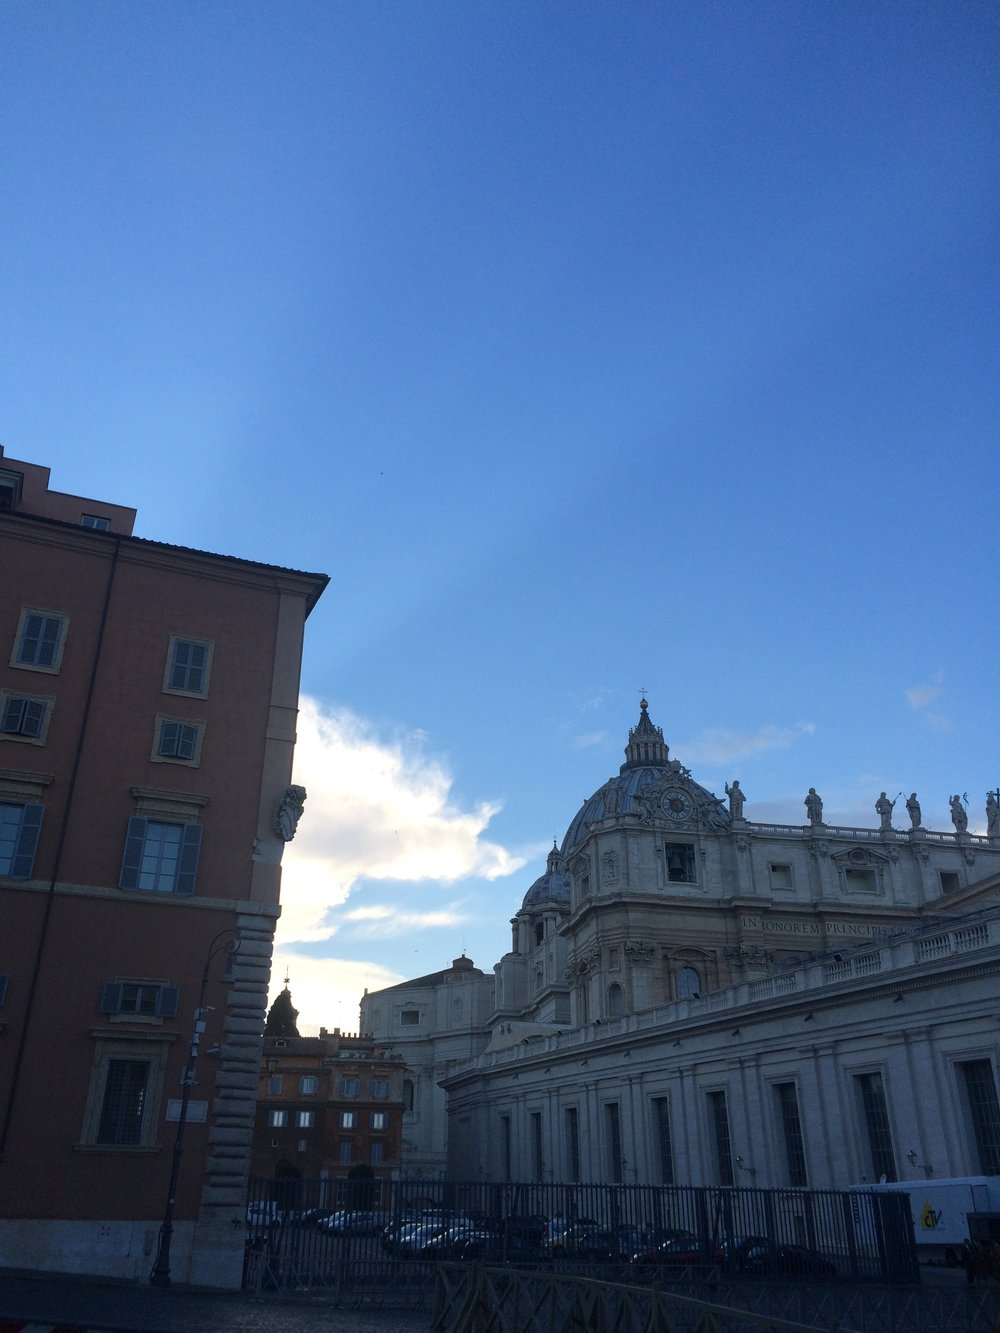 Just outside Vatican City. I liked the rays of light coming from behind the building on the left.